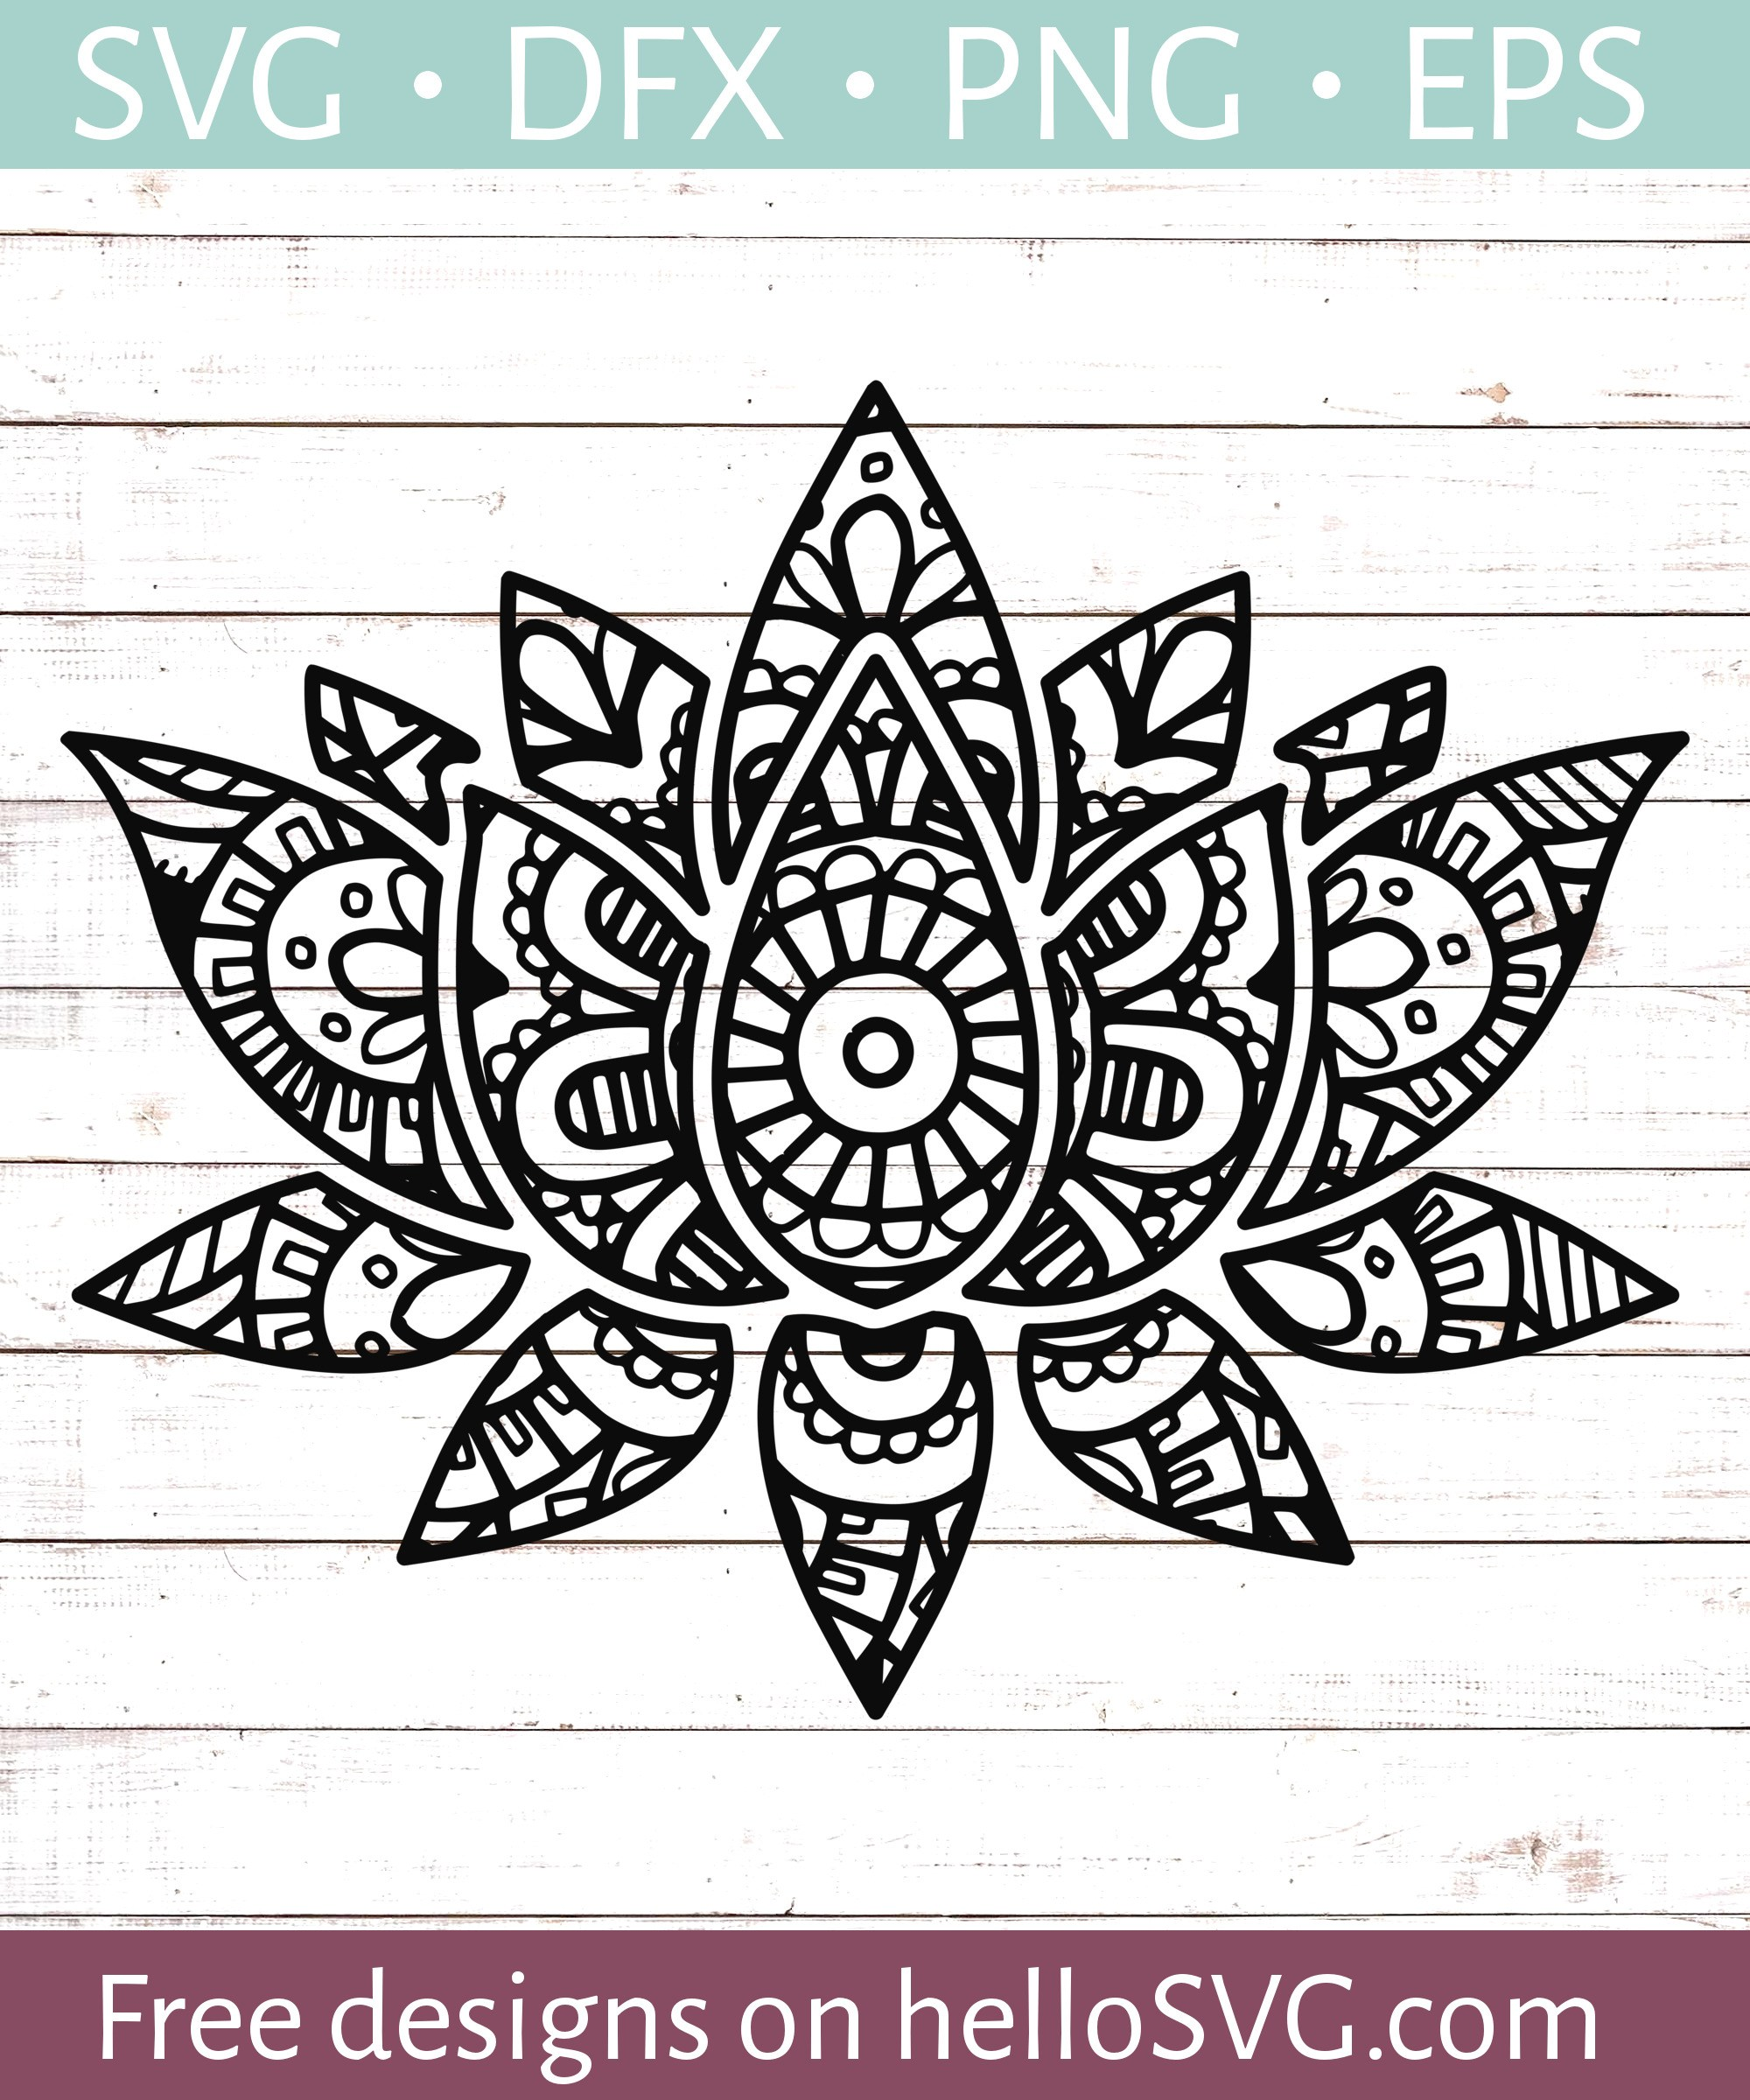 svg mandala #855, Download drawings